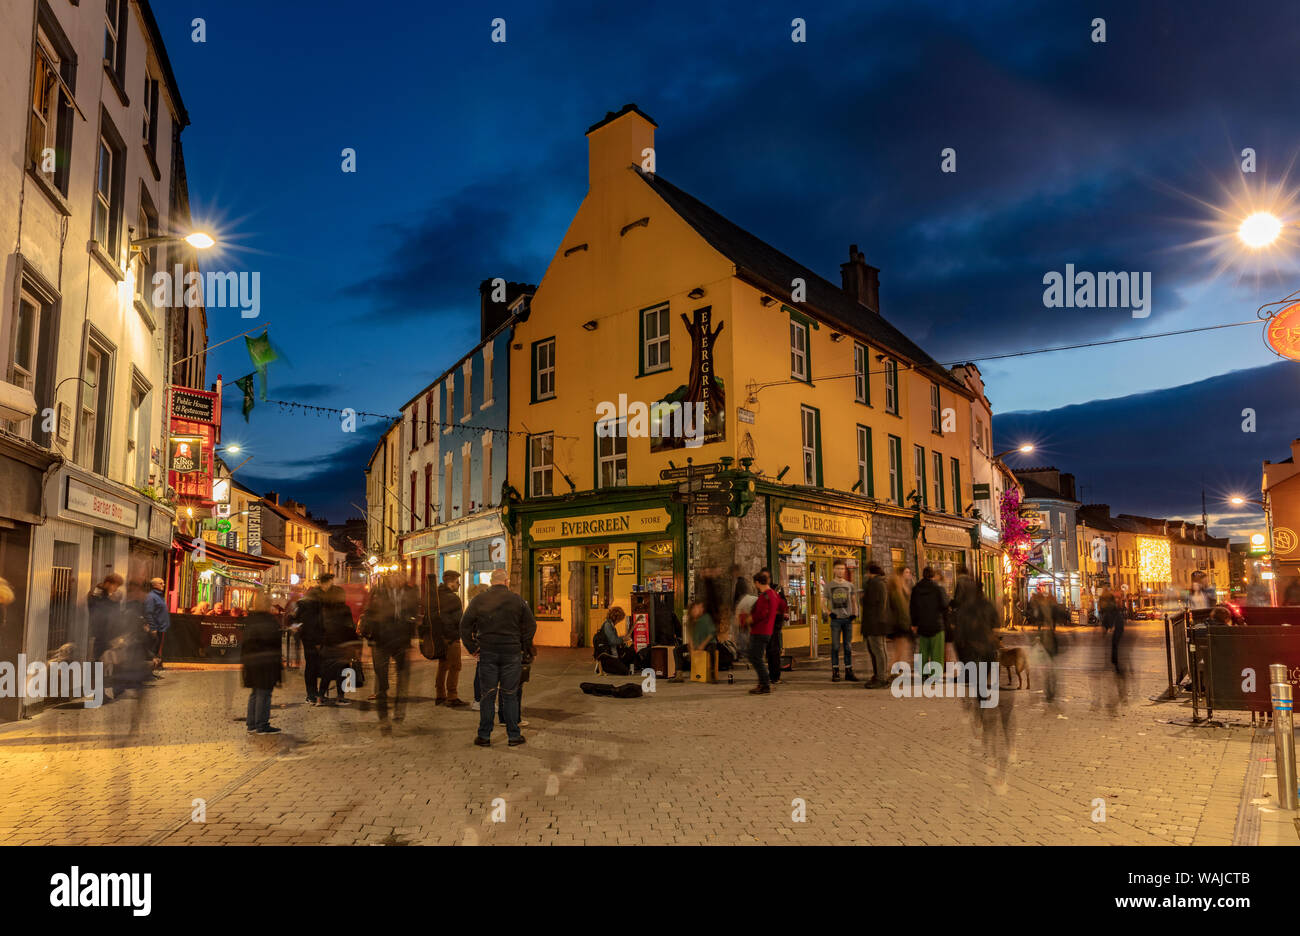 Galway - Wikitravel